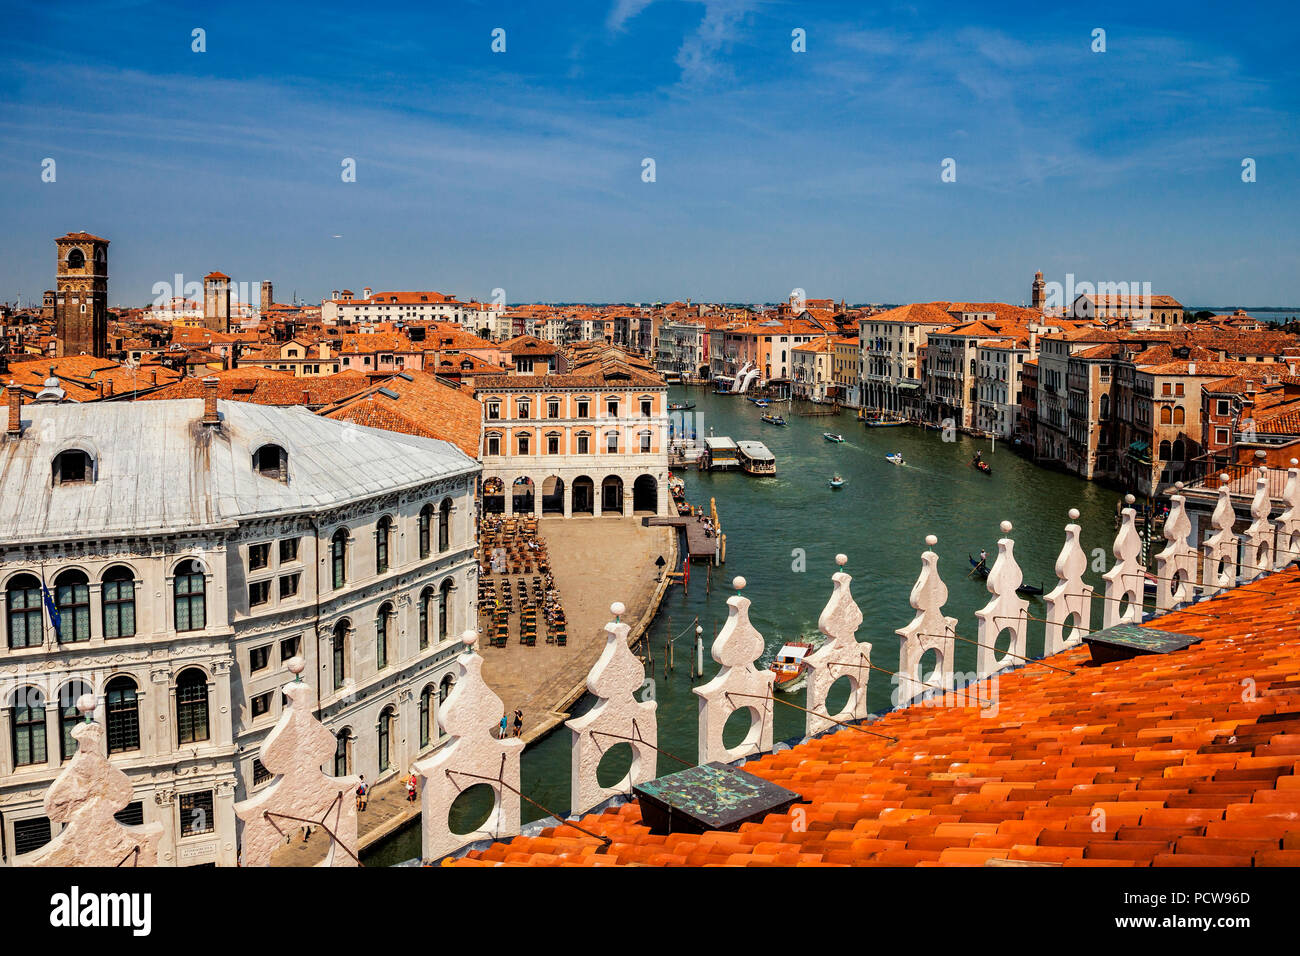 View of Venice and the Grand Canal from the rooftop - Stock Image